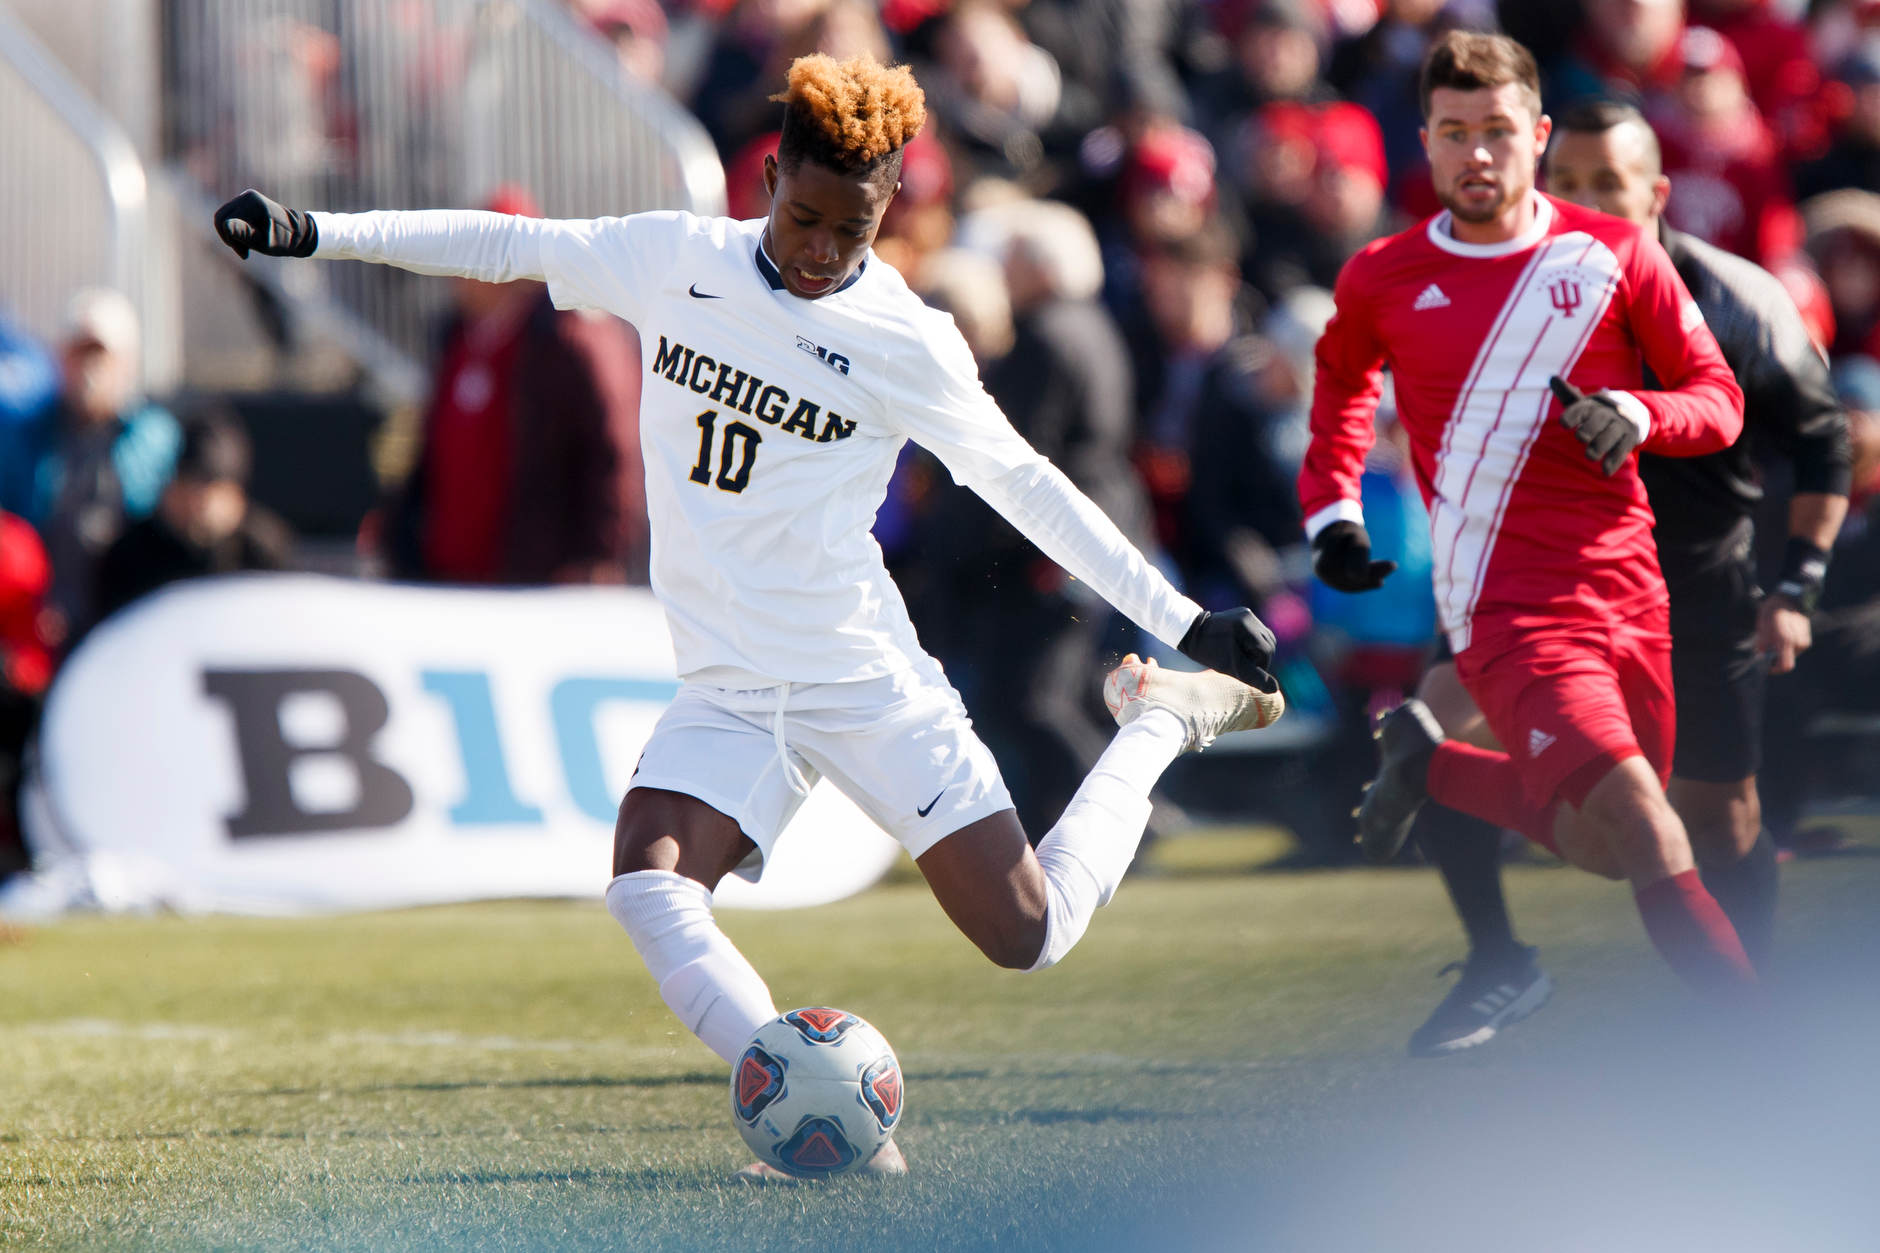 Michigan's Umar Farouk Osman (10) takes a shot during the Big Ten Men's Soccer Tournament championship game against Indiana at Grand Park in Westfield, Indiana on Sunday, Nov. 11, 2018. (Photo by James Brosher)